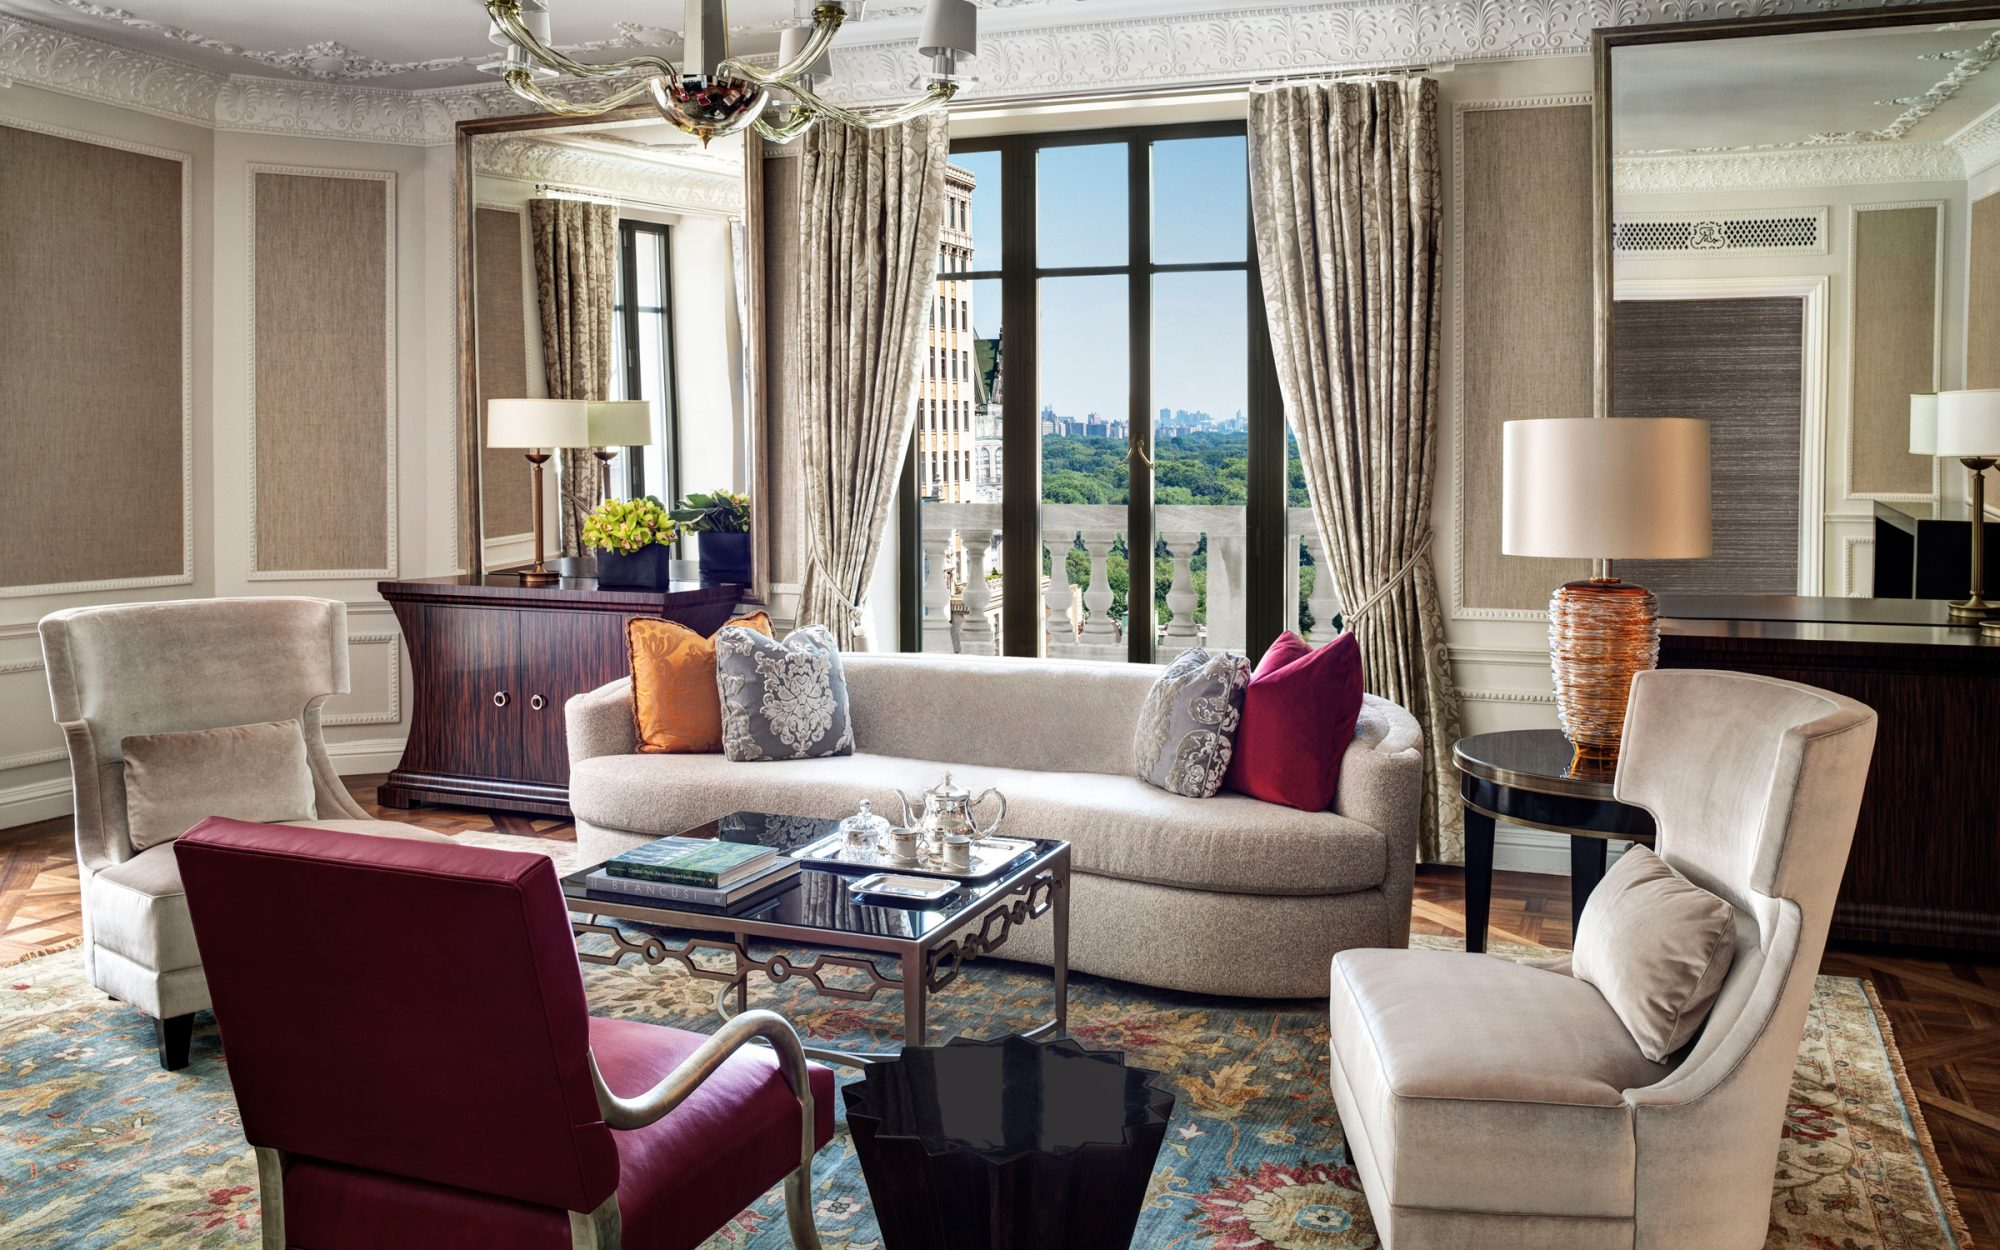 Presidential Suite at the St. Regis New York in New York City